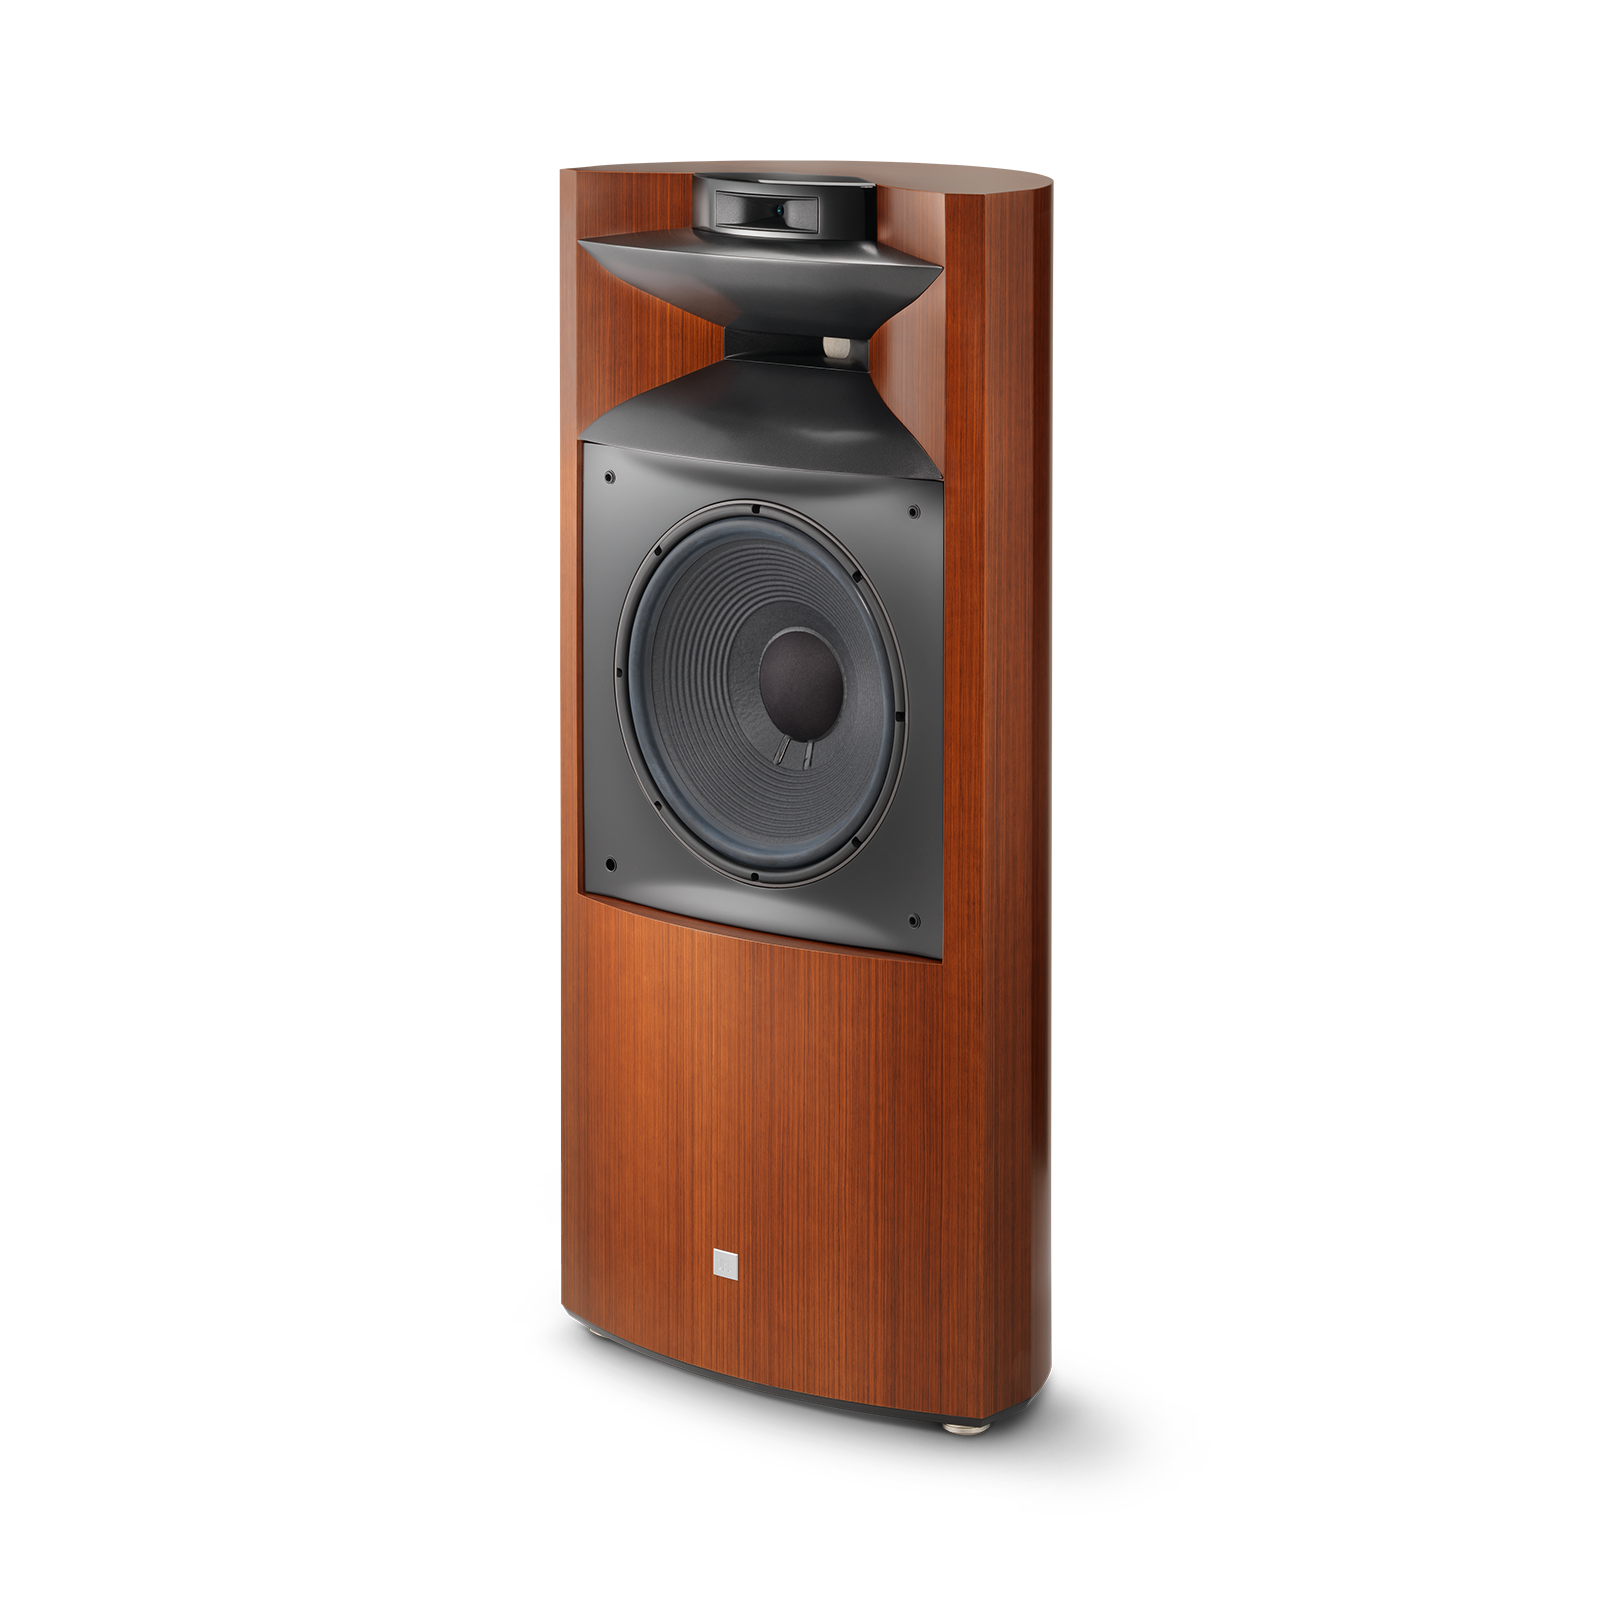 "K2 S9900 - Wood Grain - 3-way 15"" (380mm) Floorstanding Loudspeaker - Detailshot 1"